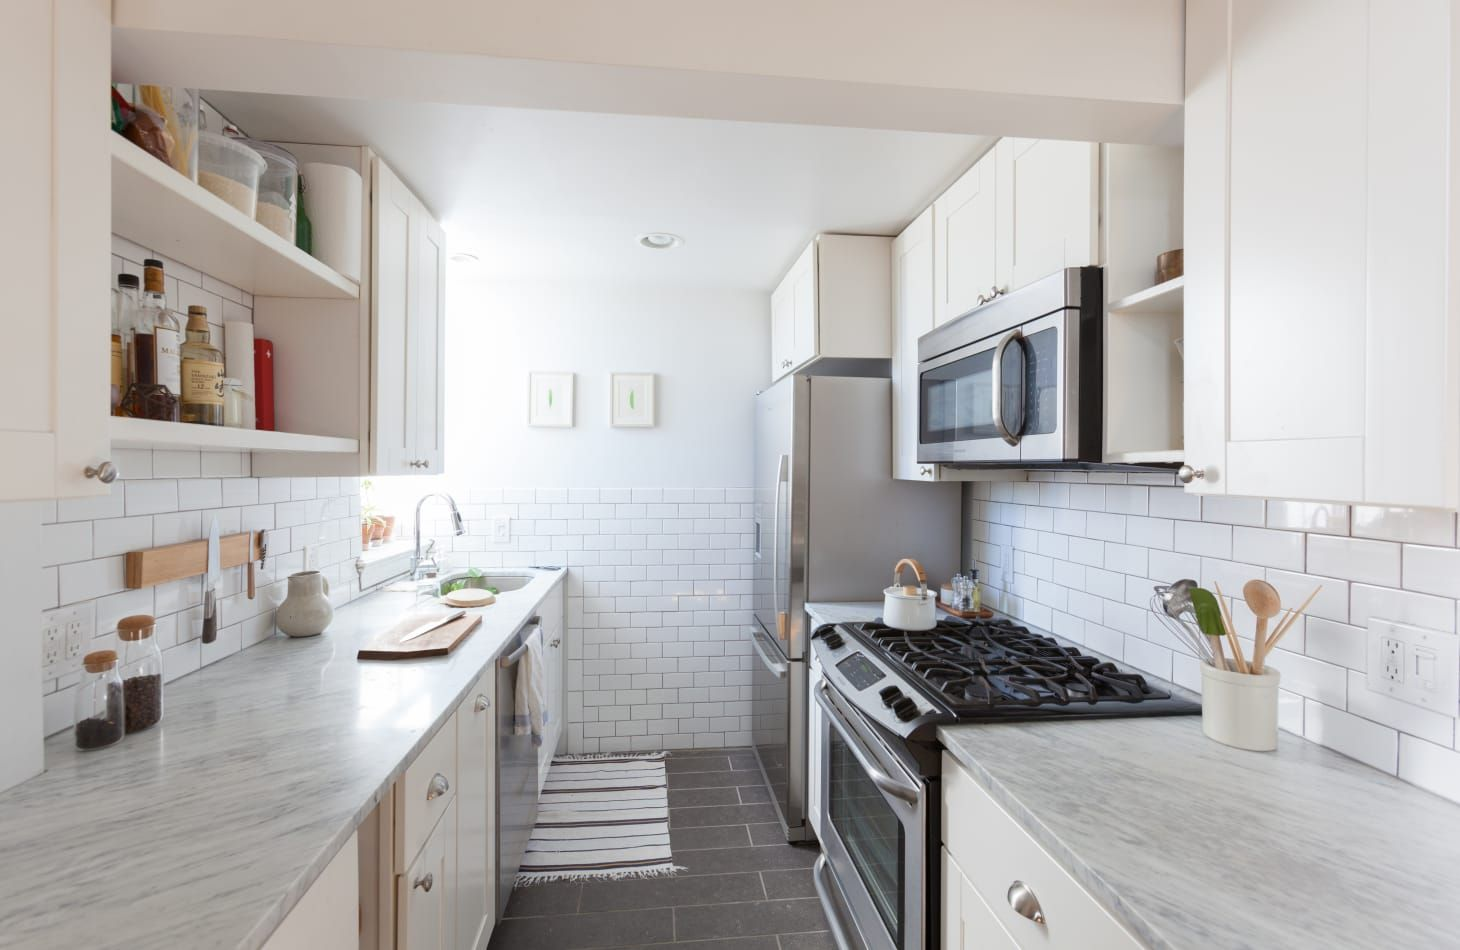 20 stunning examples that show how to make a galley